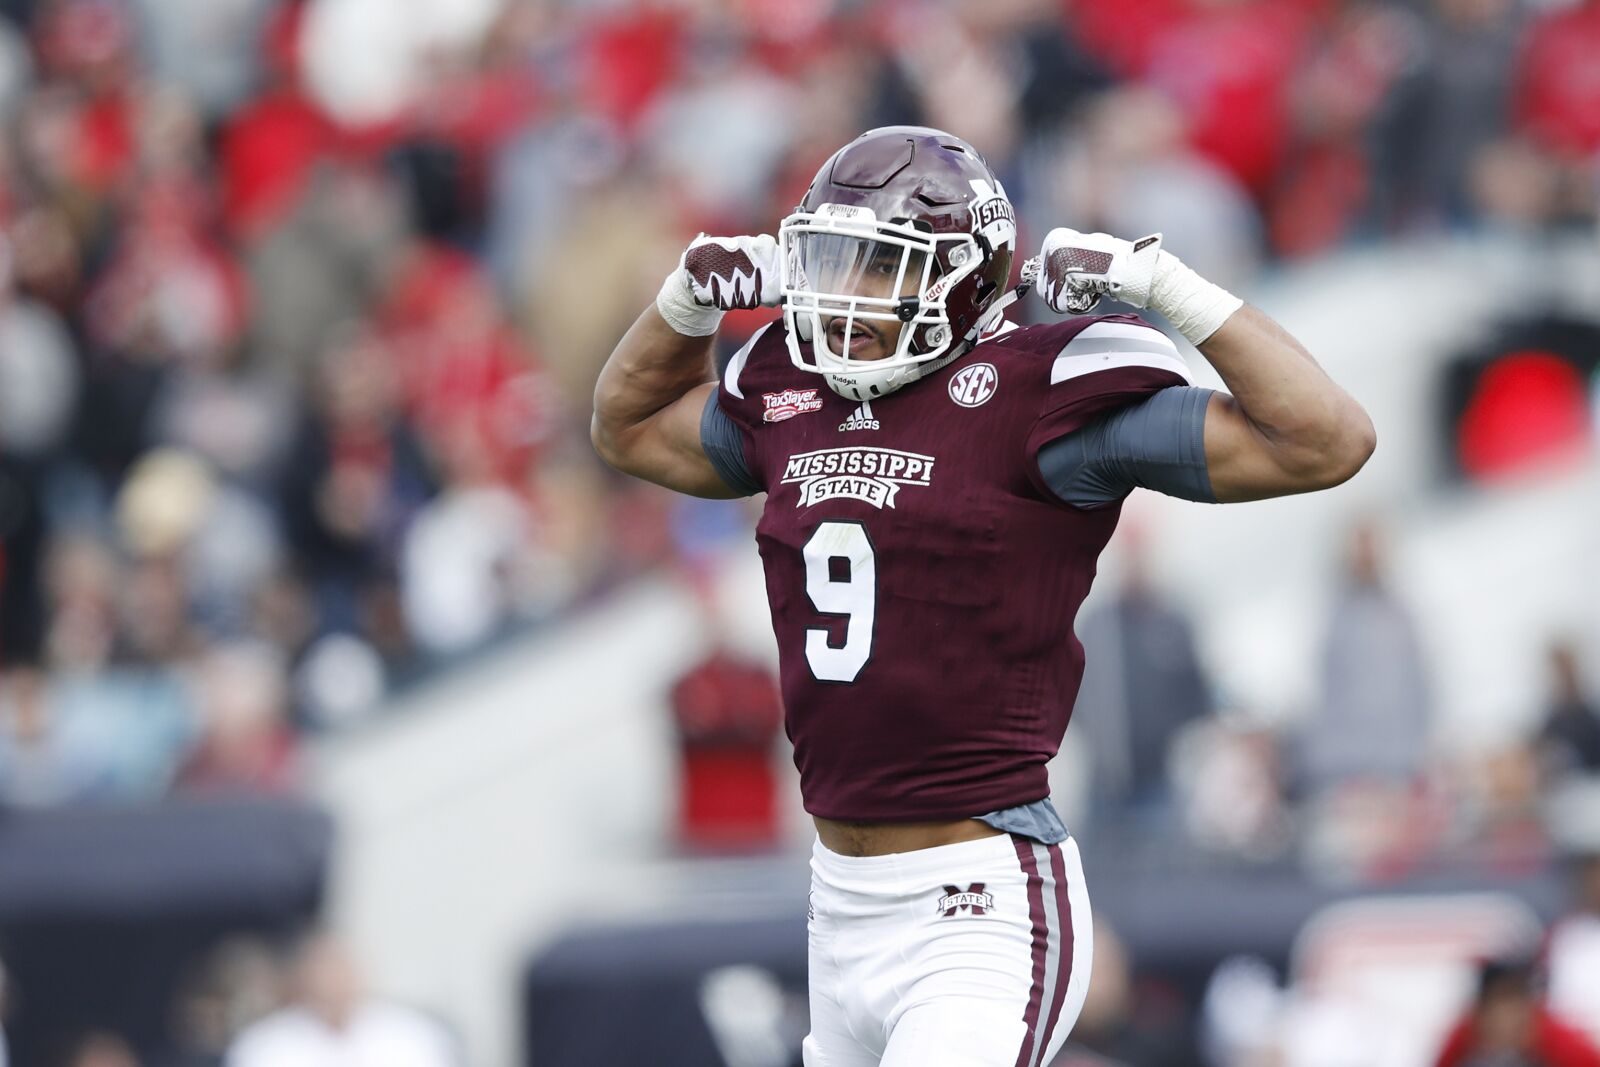 Some believe Montez Sweat will drop due to heart condition